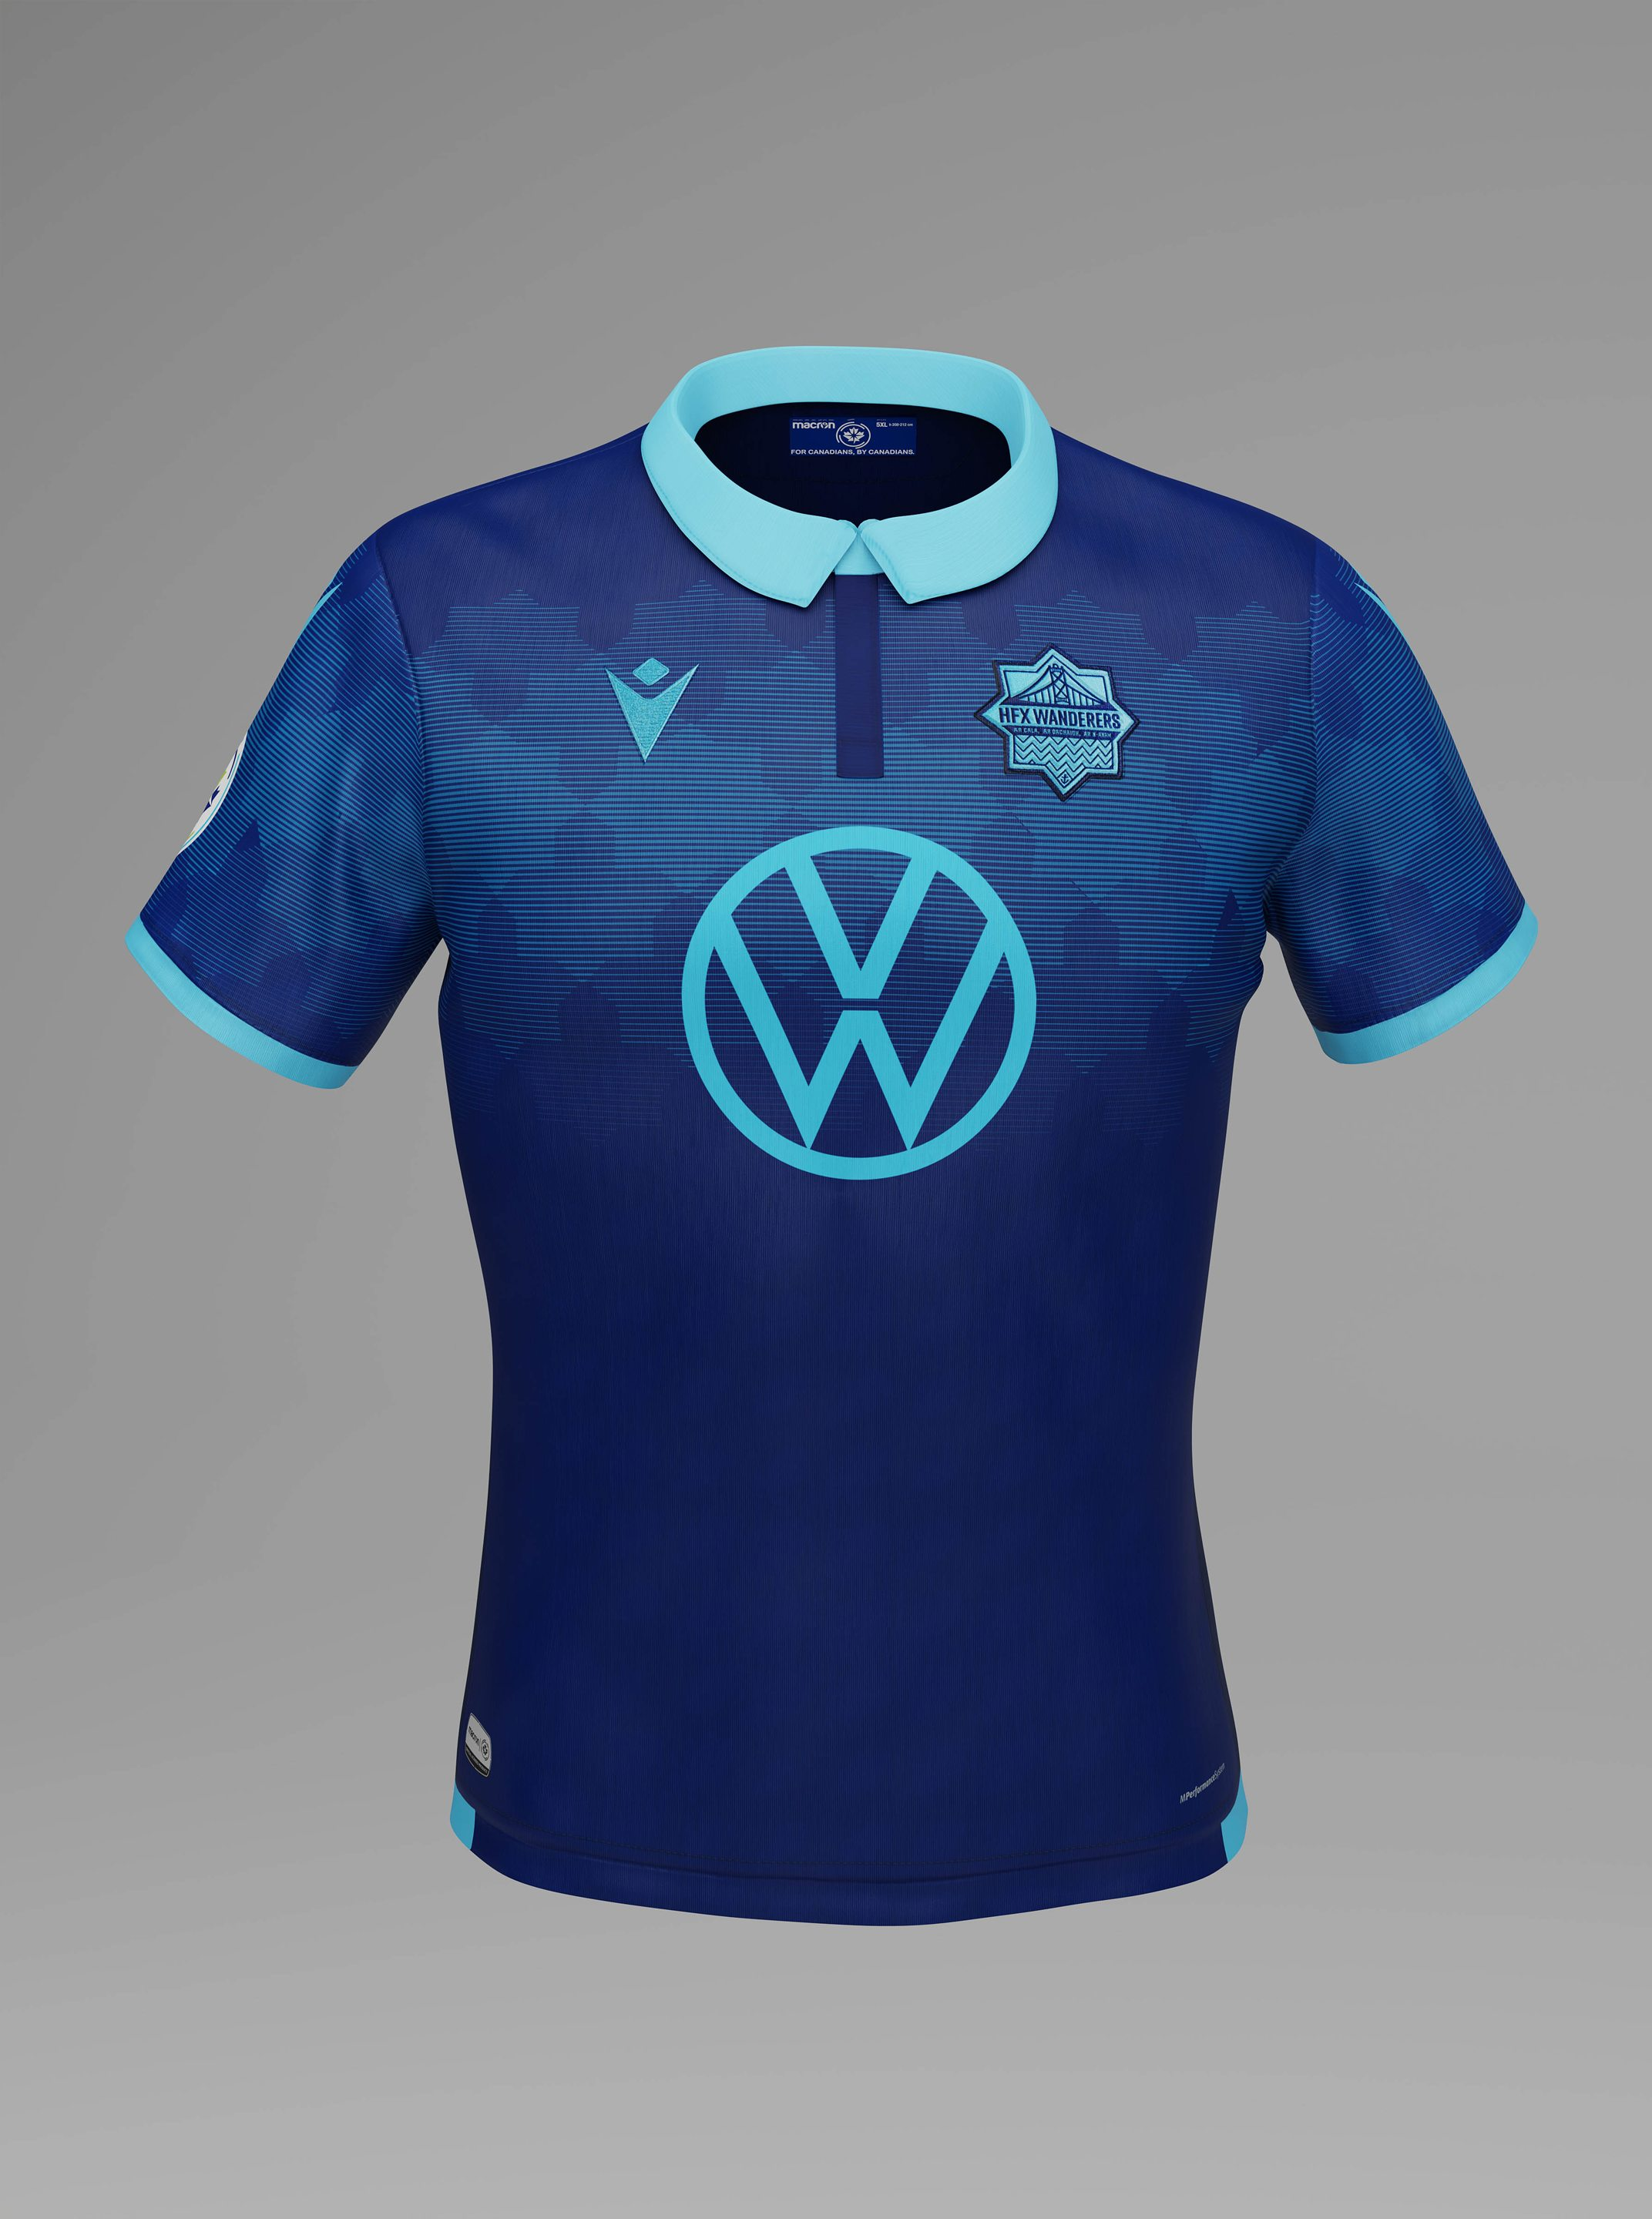 officielle maillot HFX Wanderers 2020 domicile